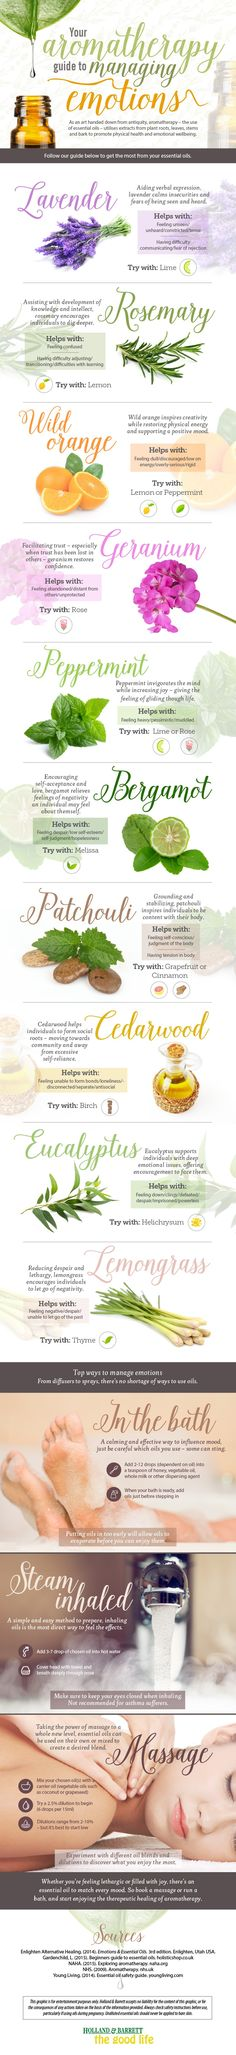 Your visual guide to using Aromatherapy and Essential Oils to Manage Mood and Energy! ❤ purasentials.com ❤ essential oils with love